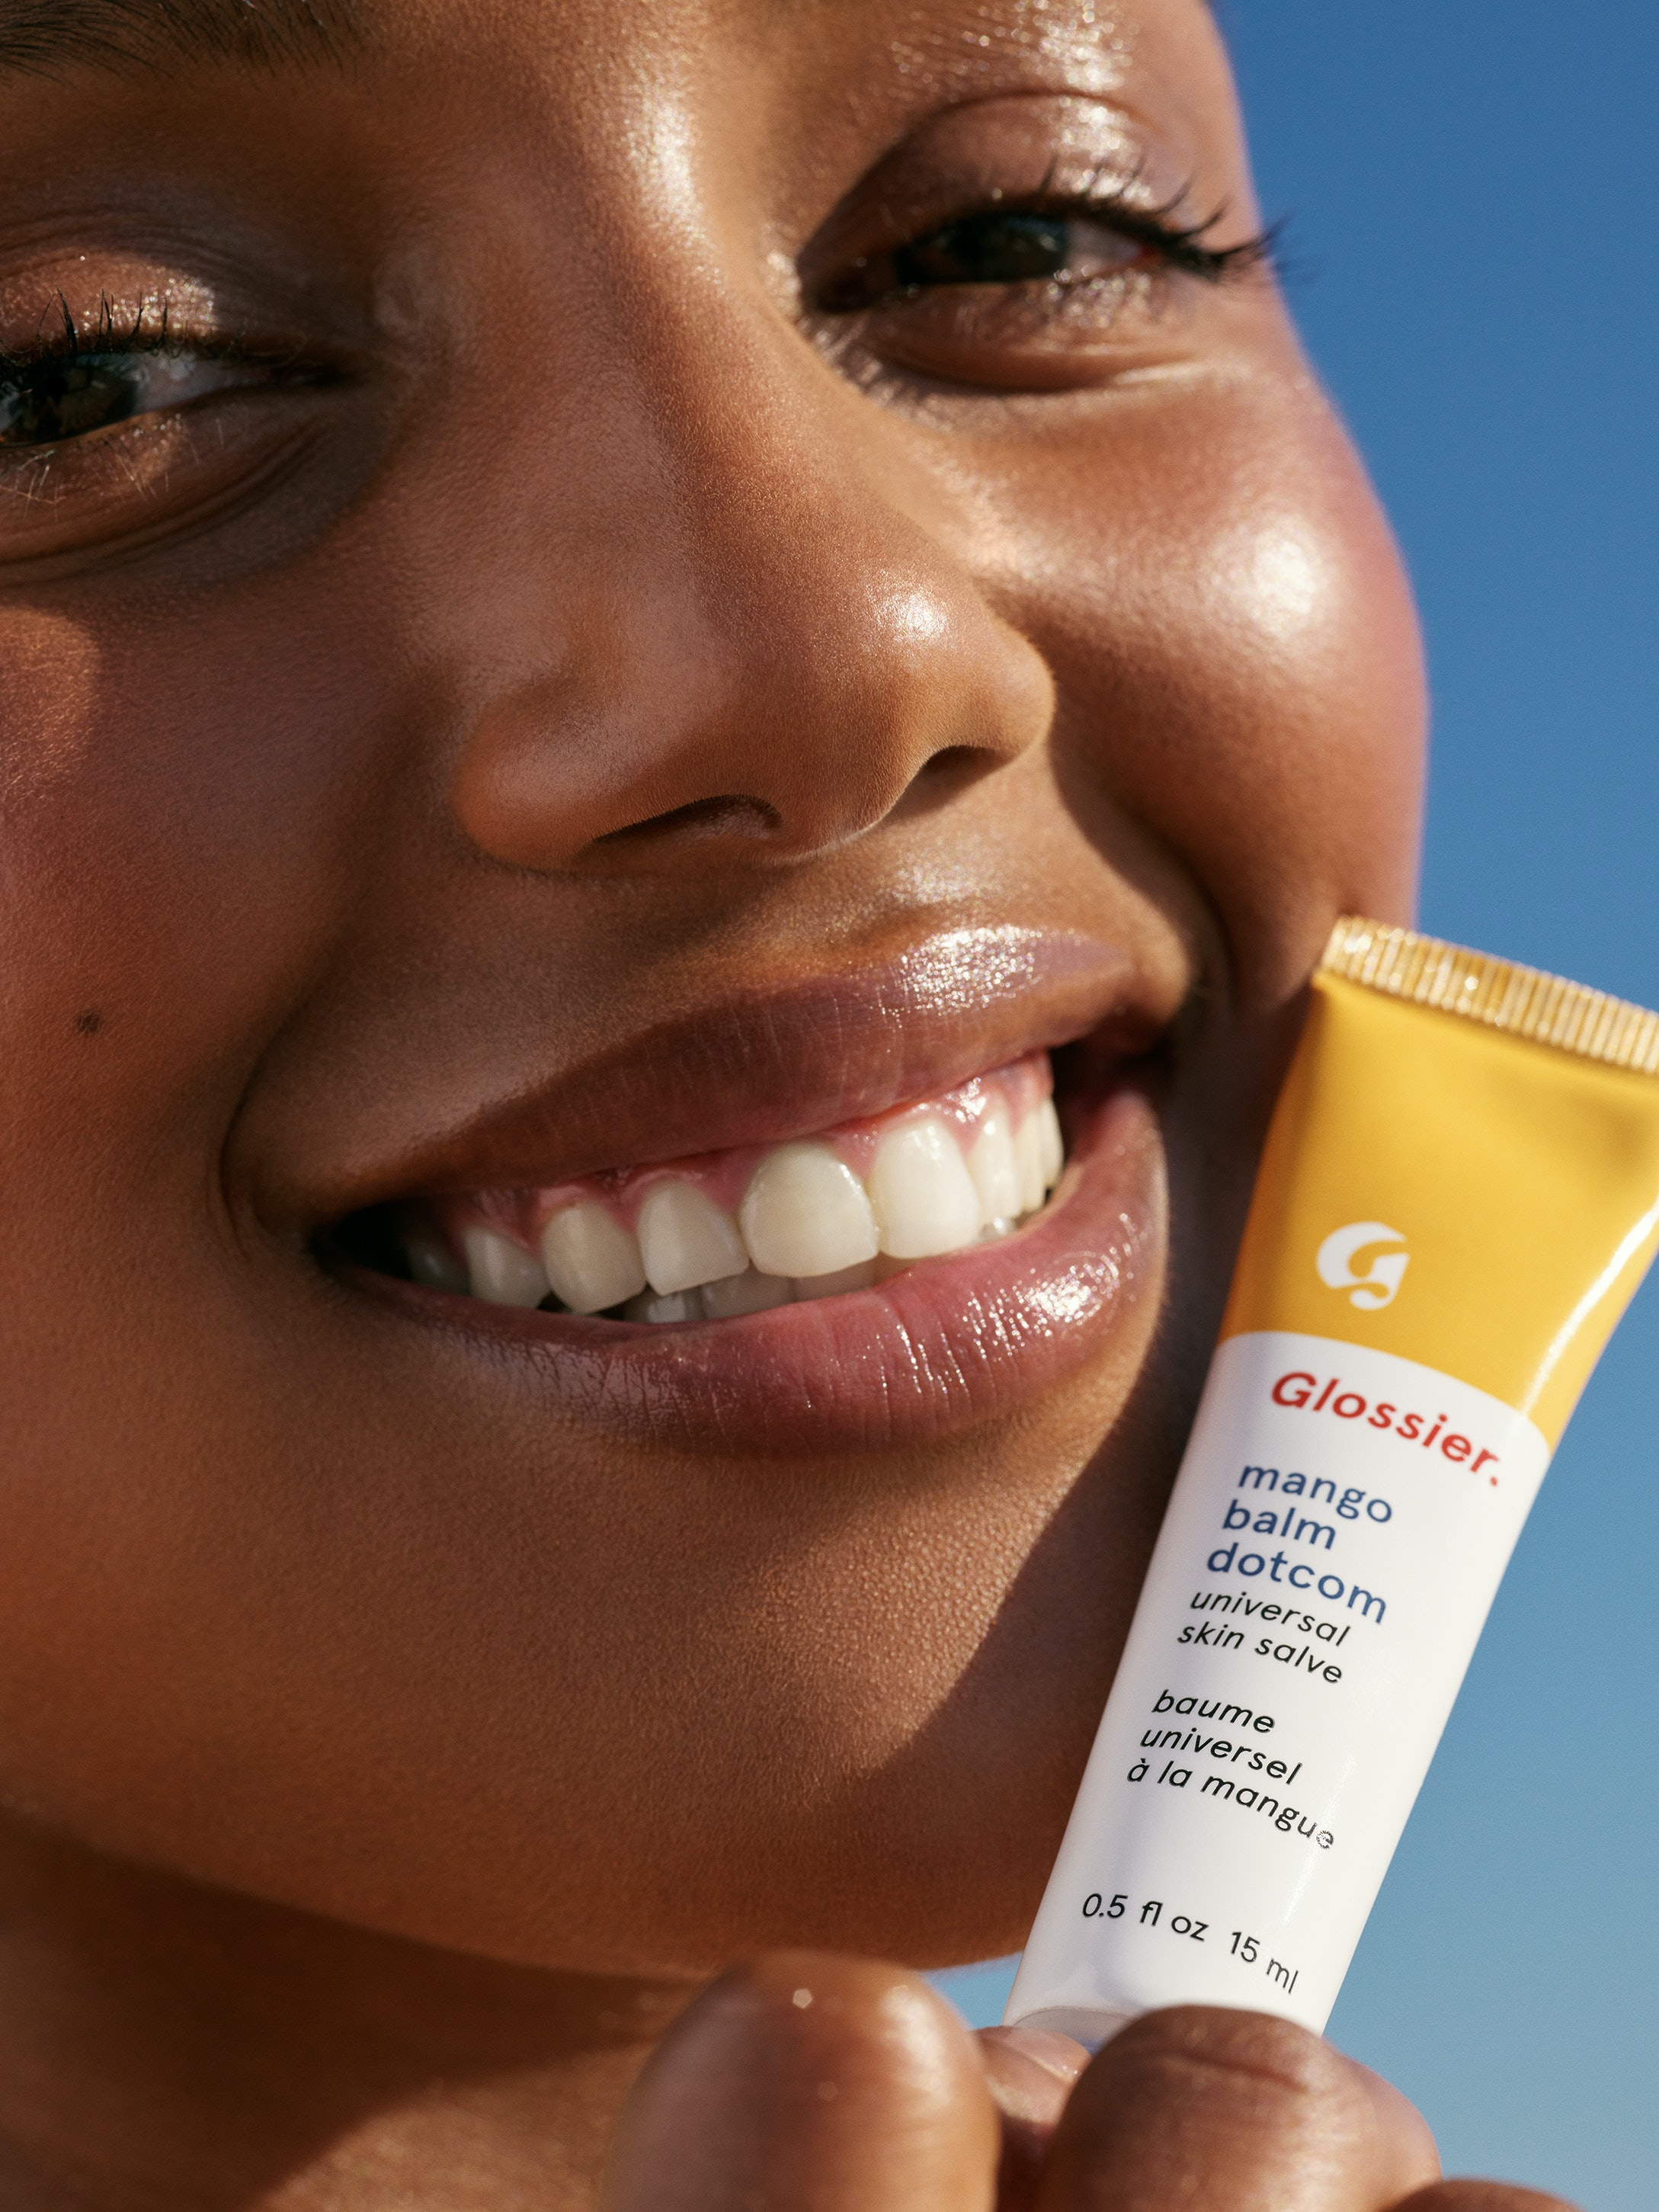 Glossiers New Mango Balm Dotcom Flavor Is Very Summery